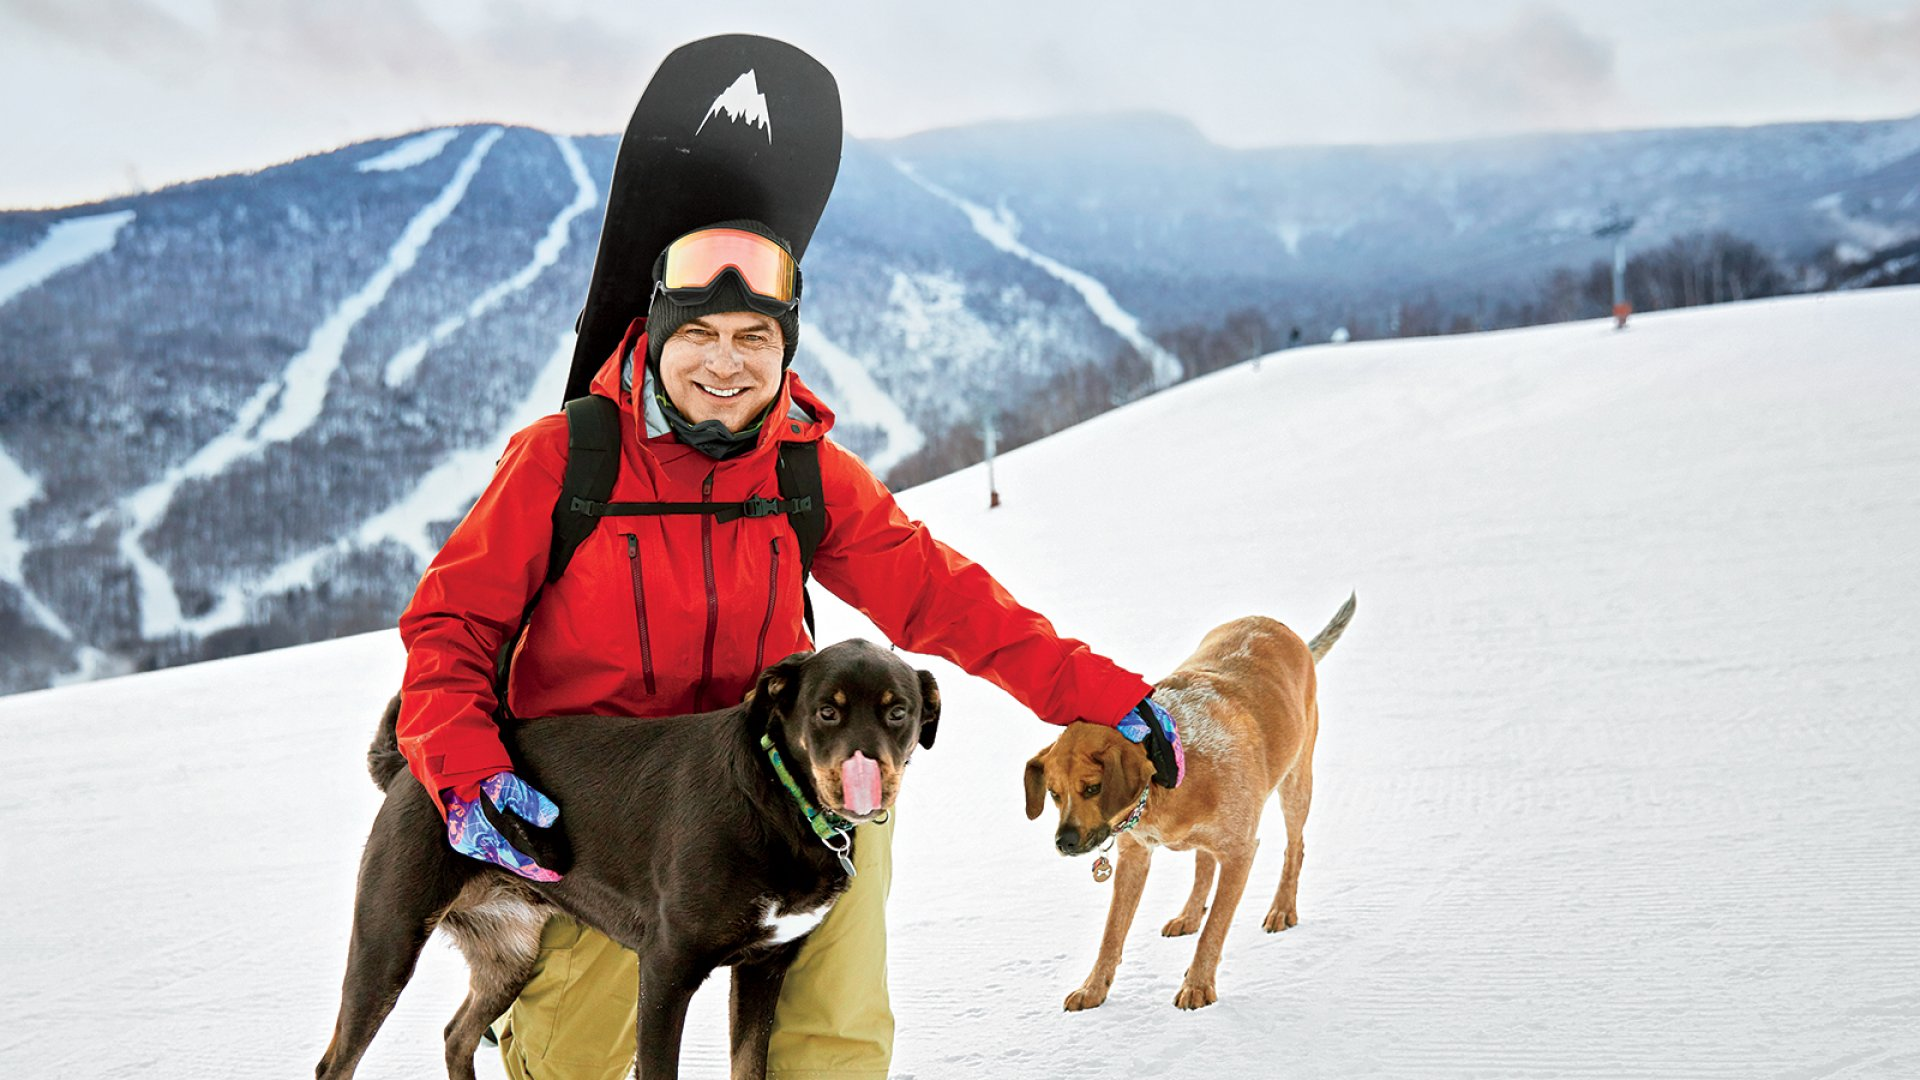 Jake Burton, with two close associates, near his home in Vermont.